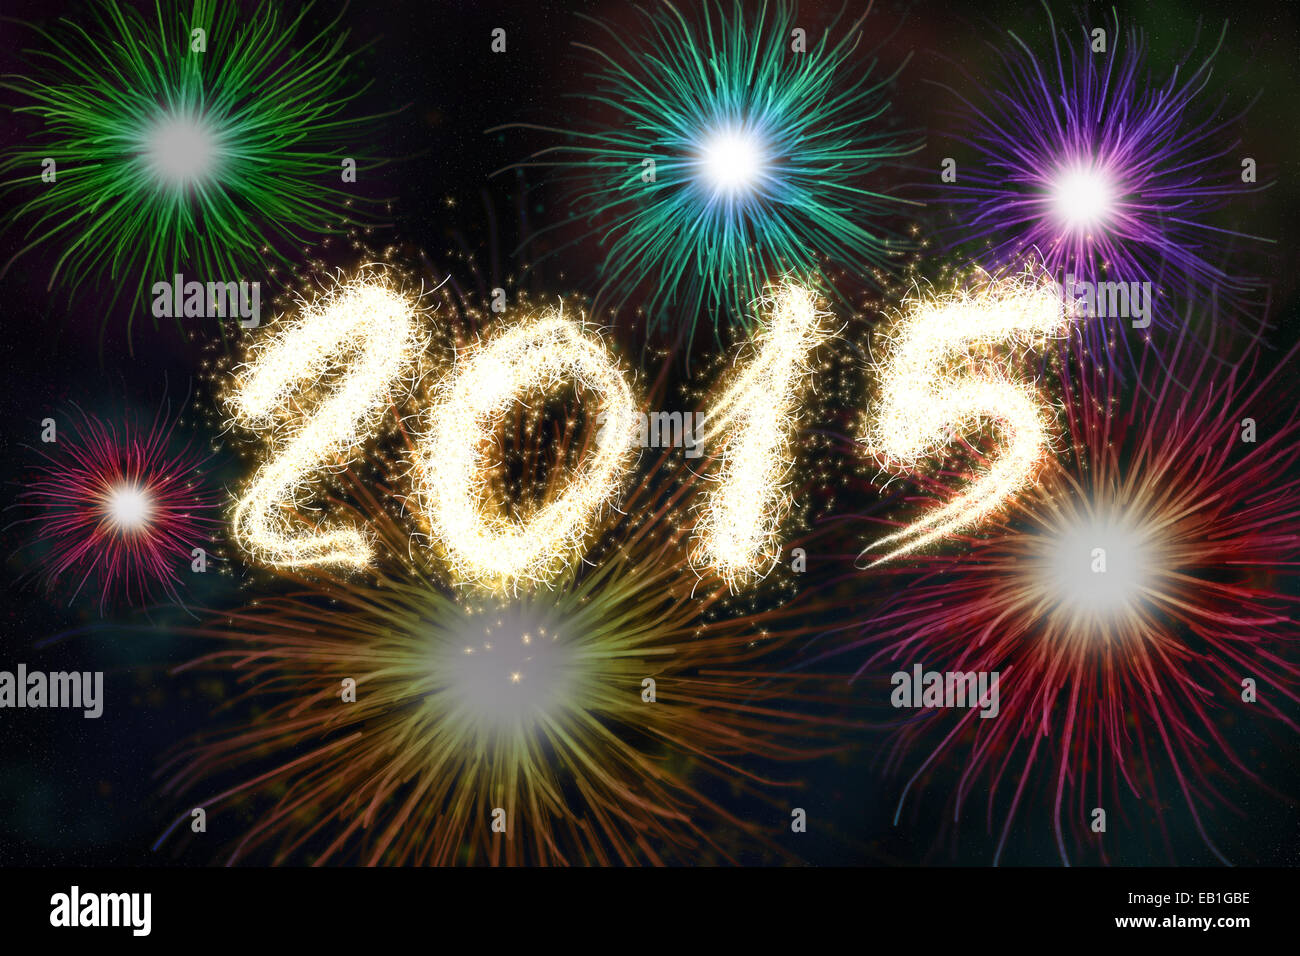 New years eve greeting card stock photos new years eve greeting new years eve greeting card with fireworks and text 2015 stock image m4hsunfo